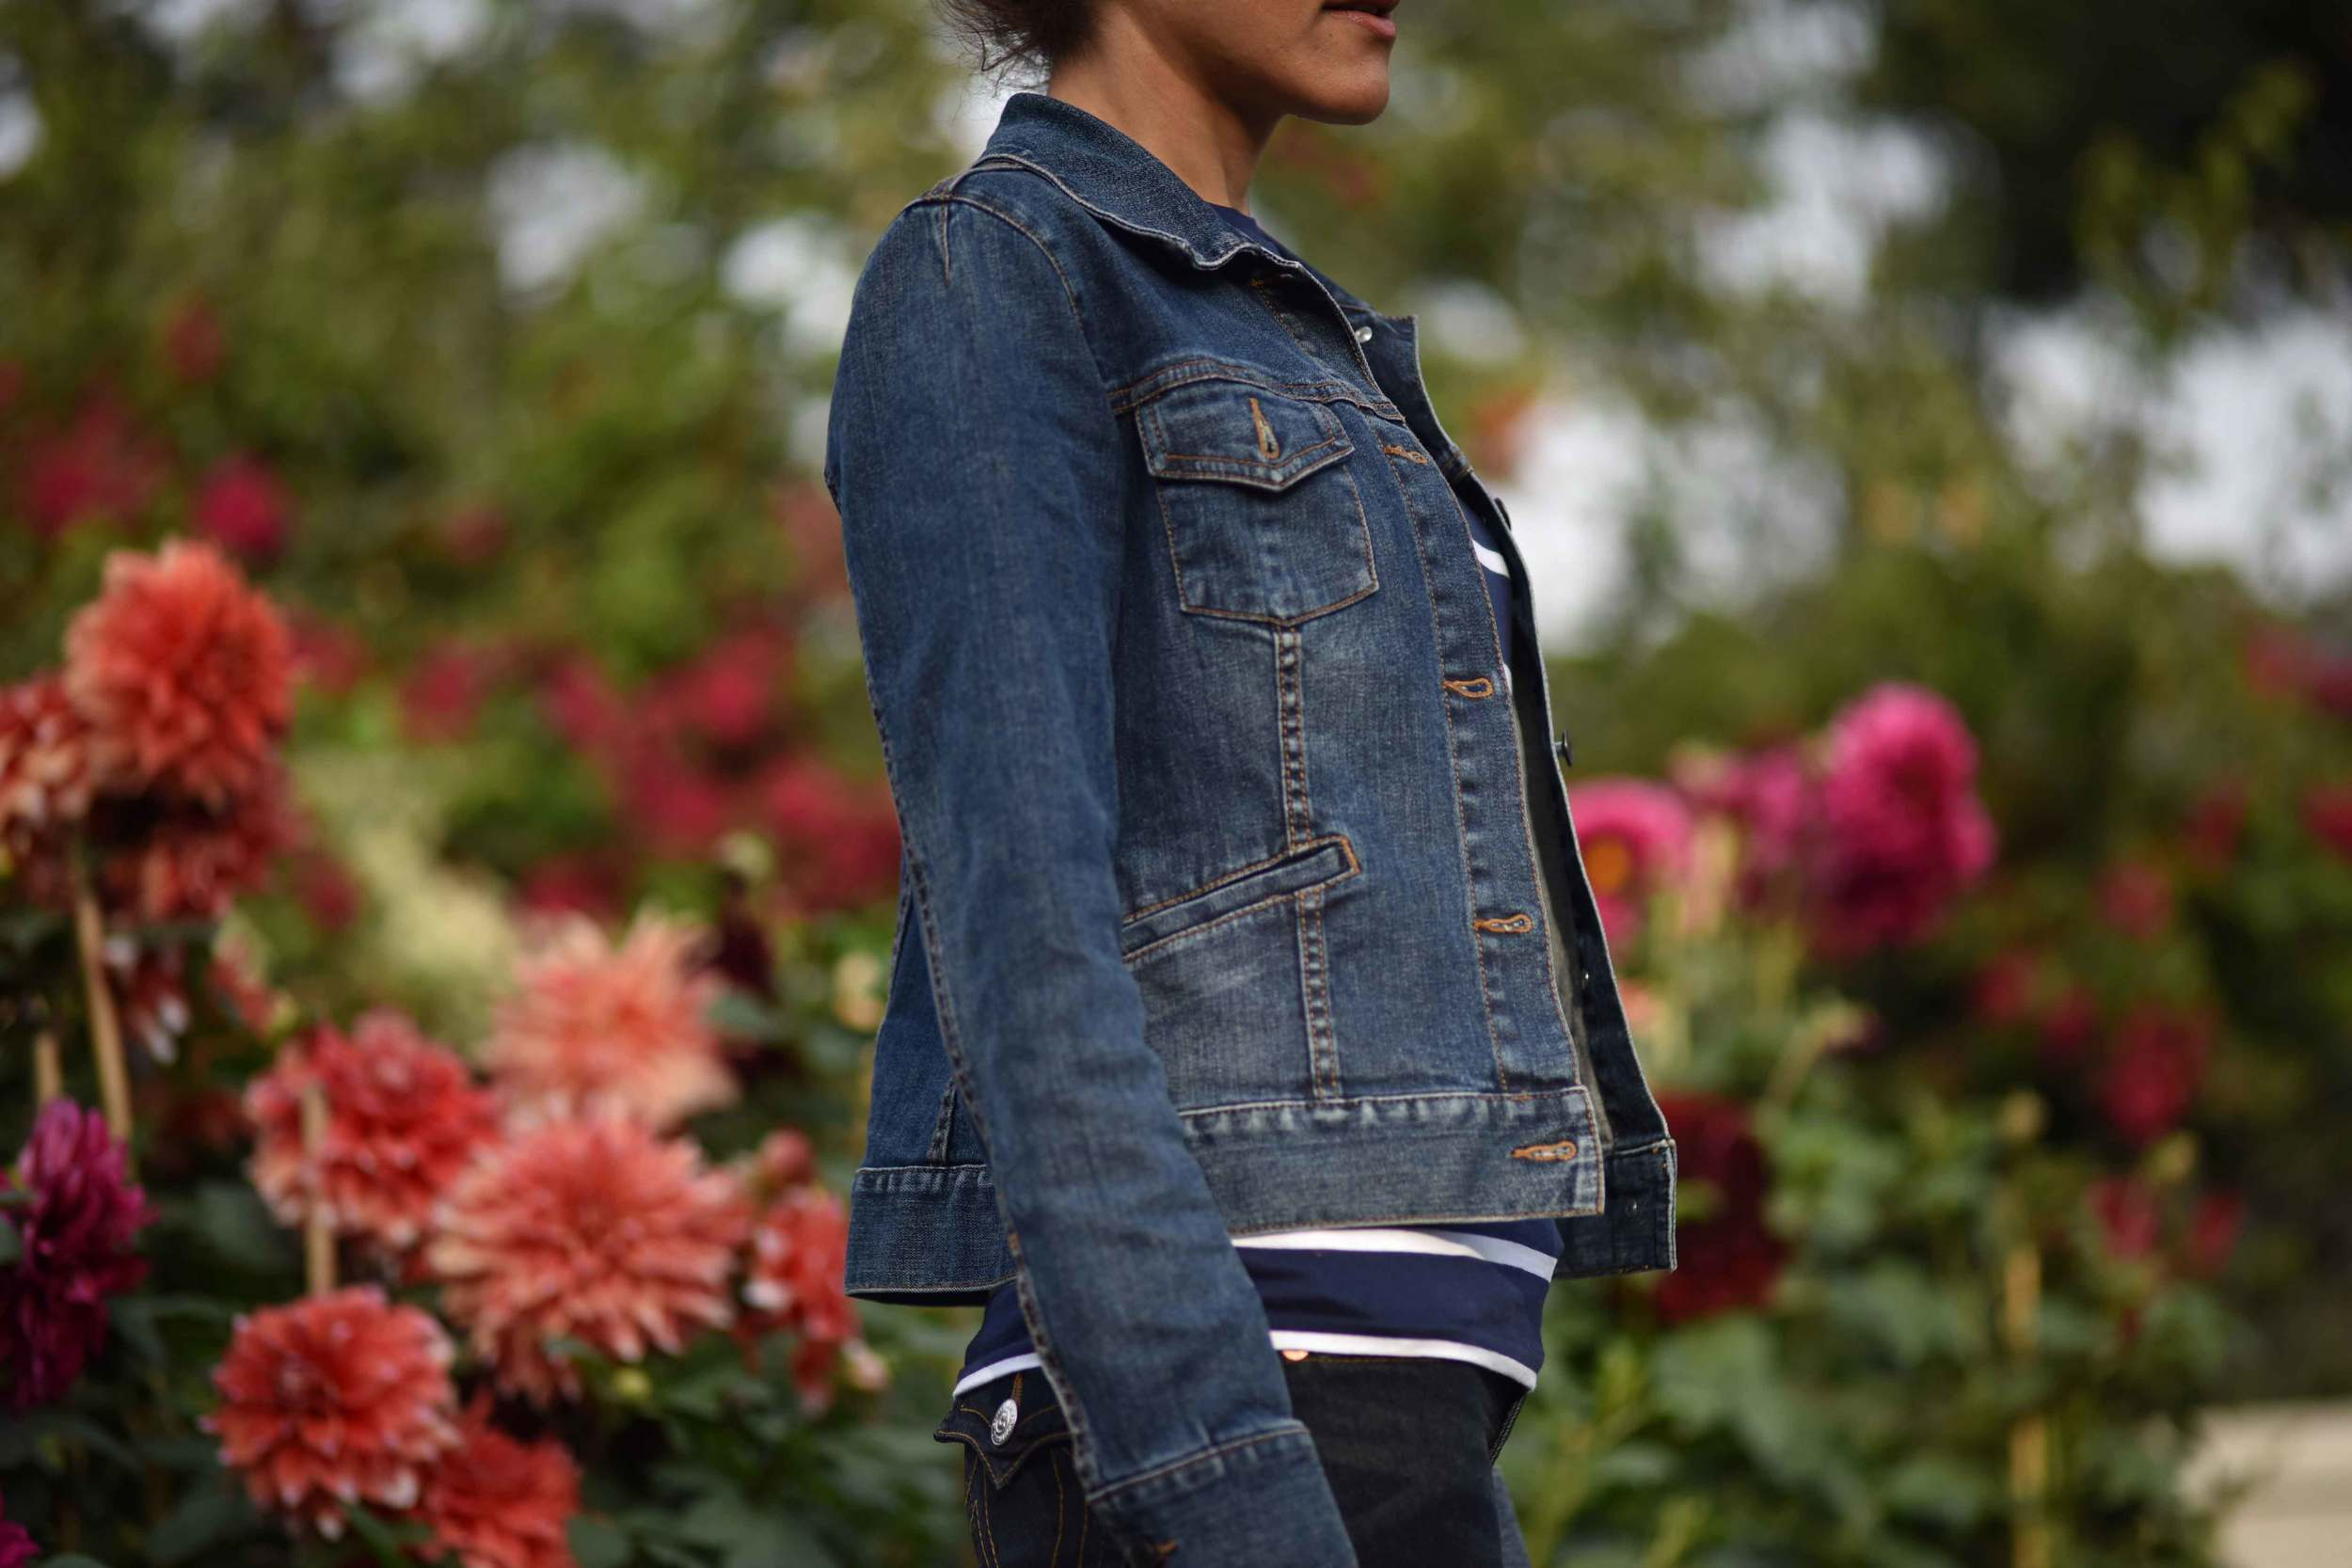 Love is in the air this spring with a Talbots denim jacket! Image©gunjanvirk